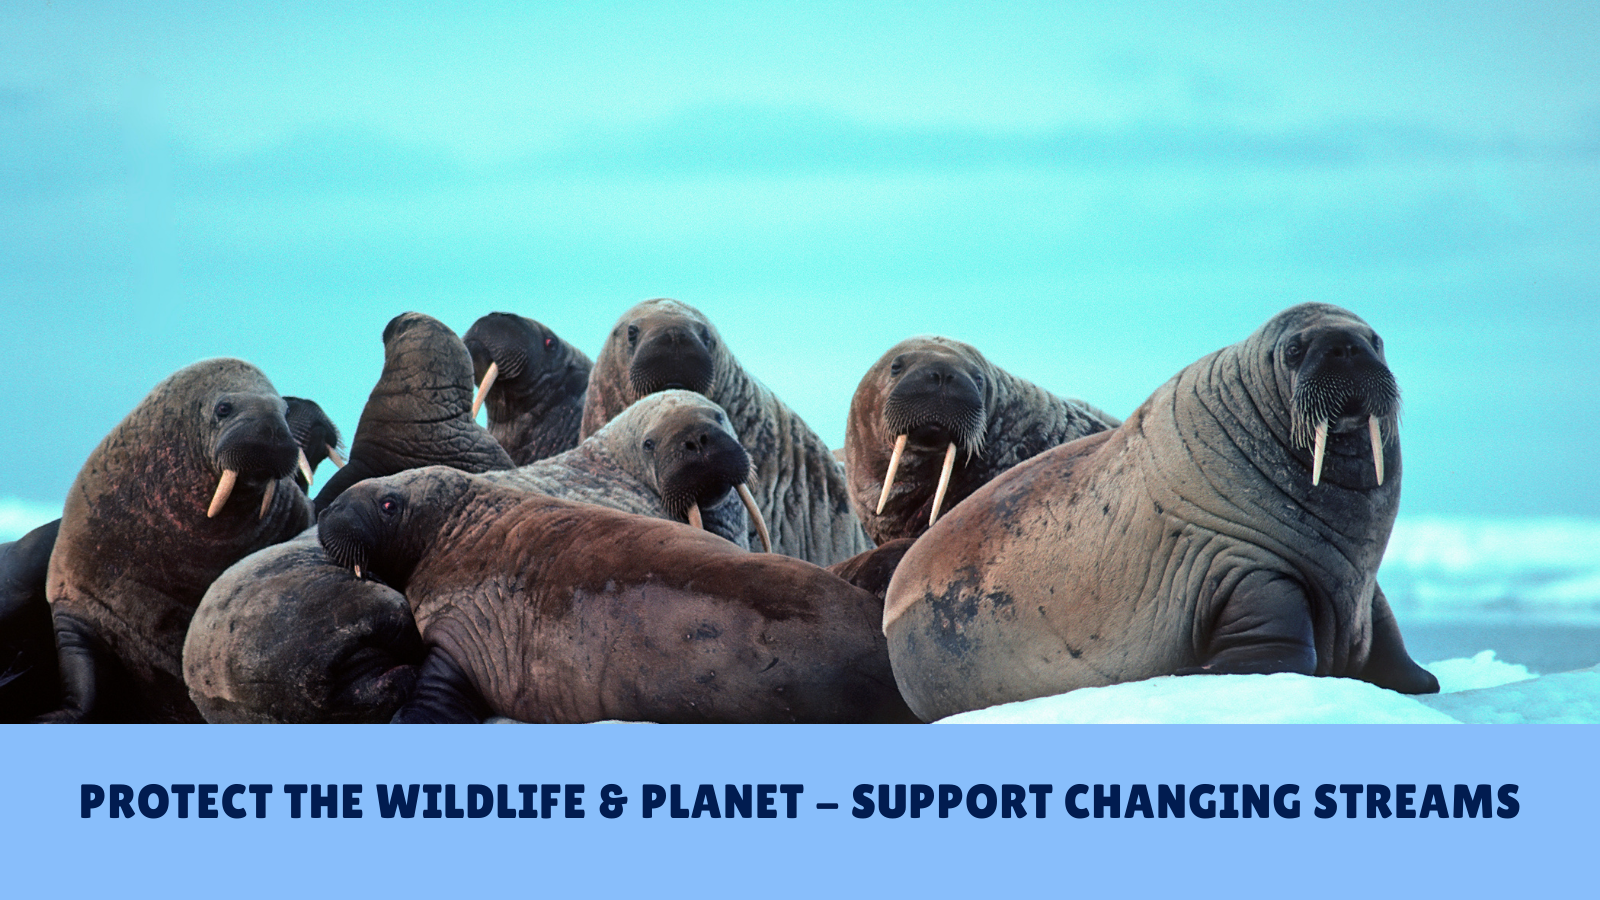 walruses Protect the wildlife and planet changing streams